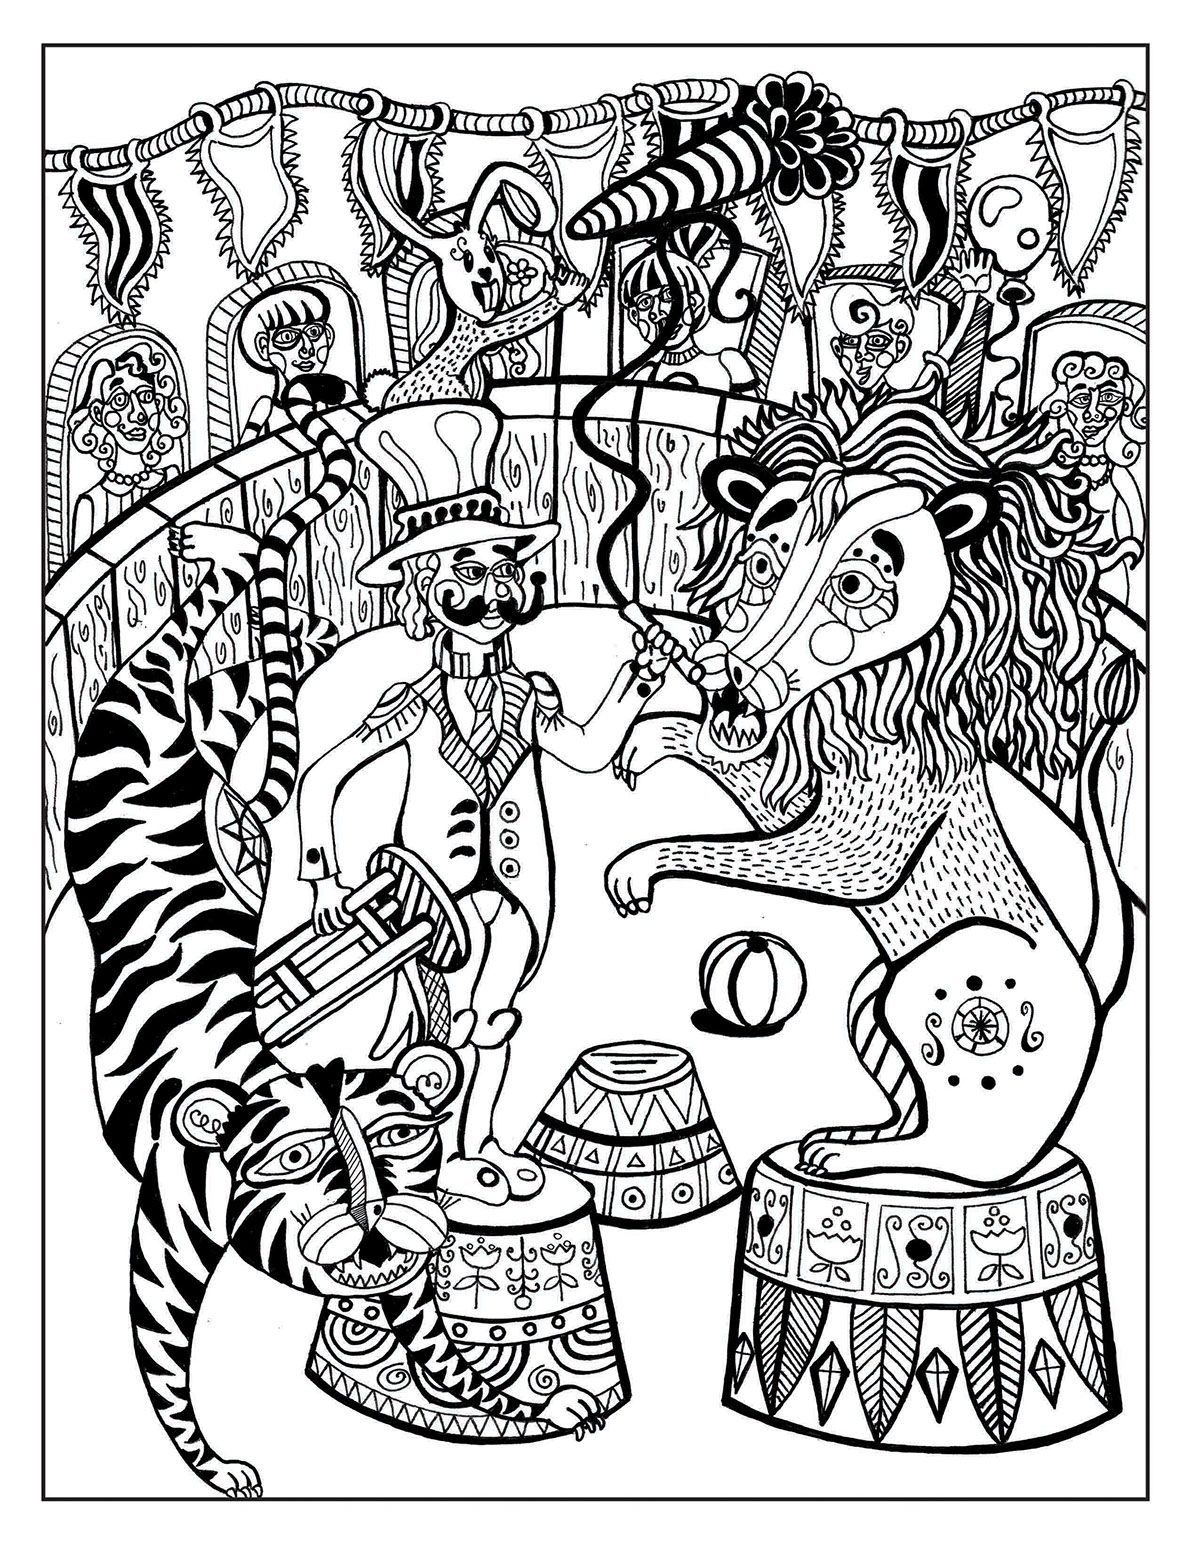 A Day At The Circus Coloring Page On Behance Coloring Book Pages Coloring Books Pattern Coloring Pages